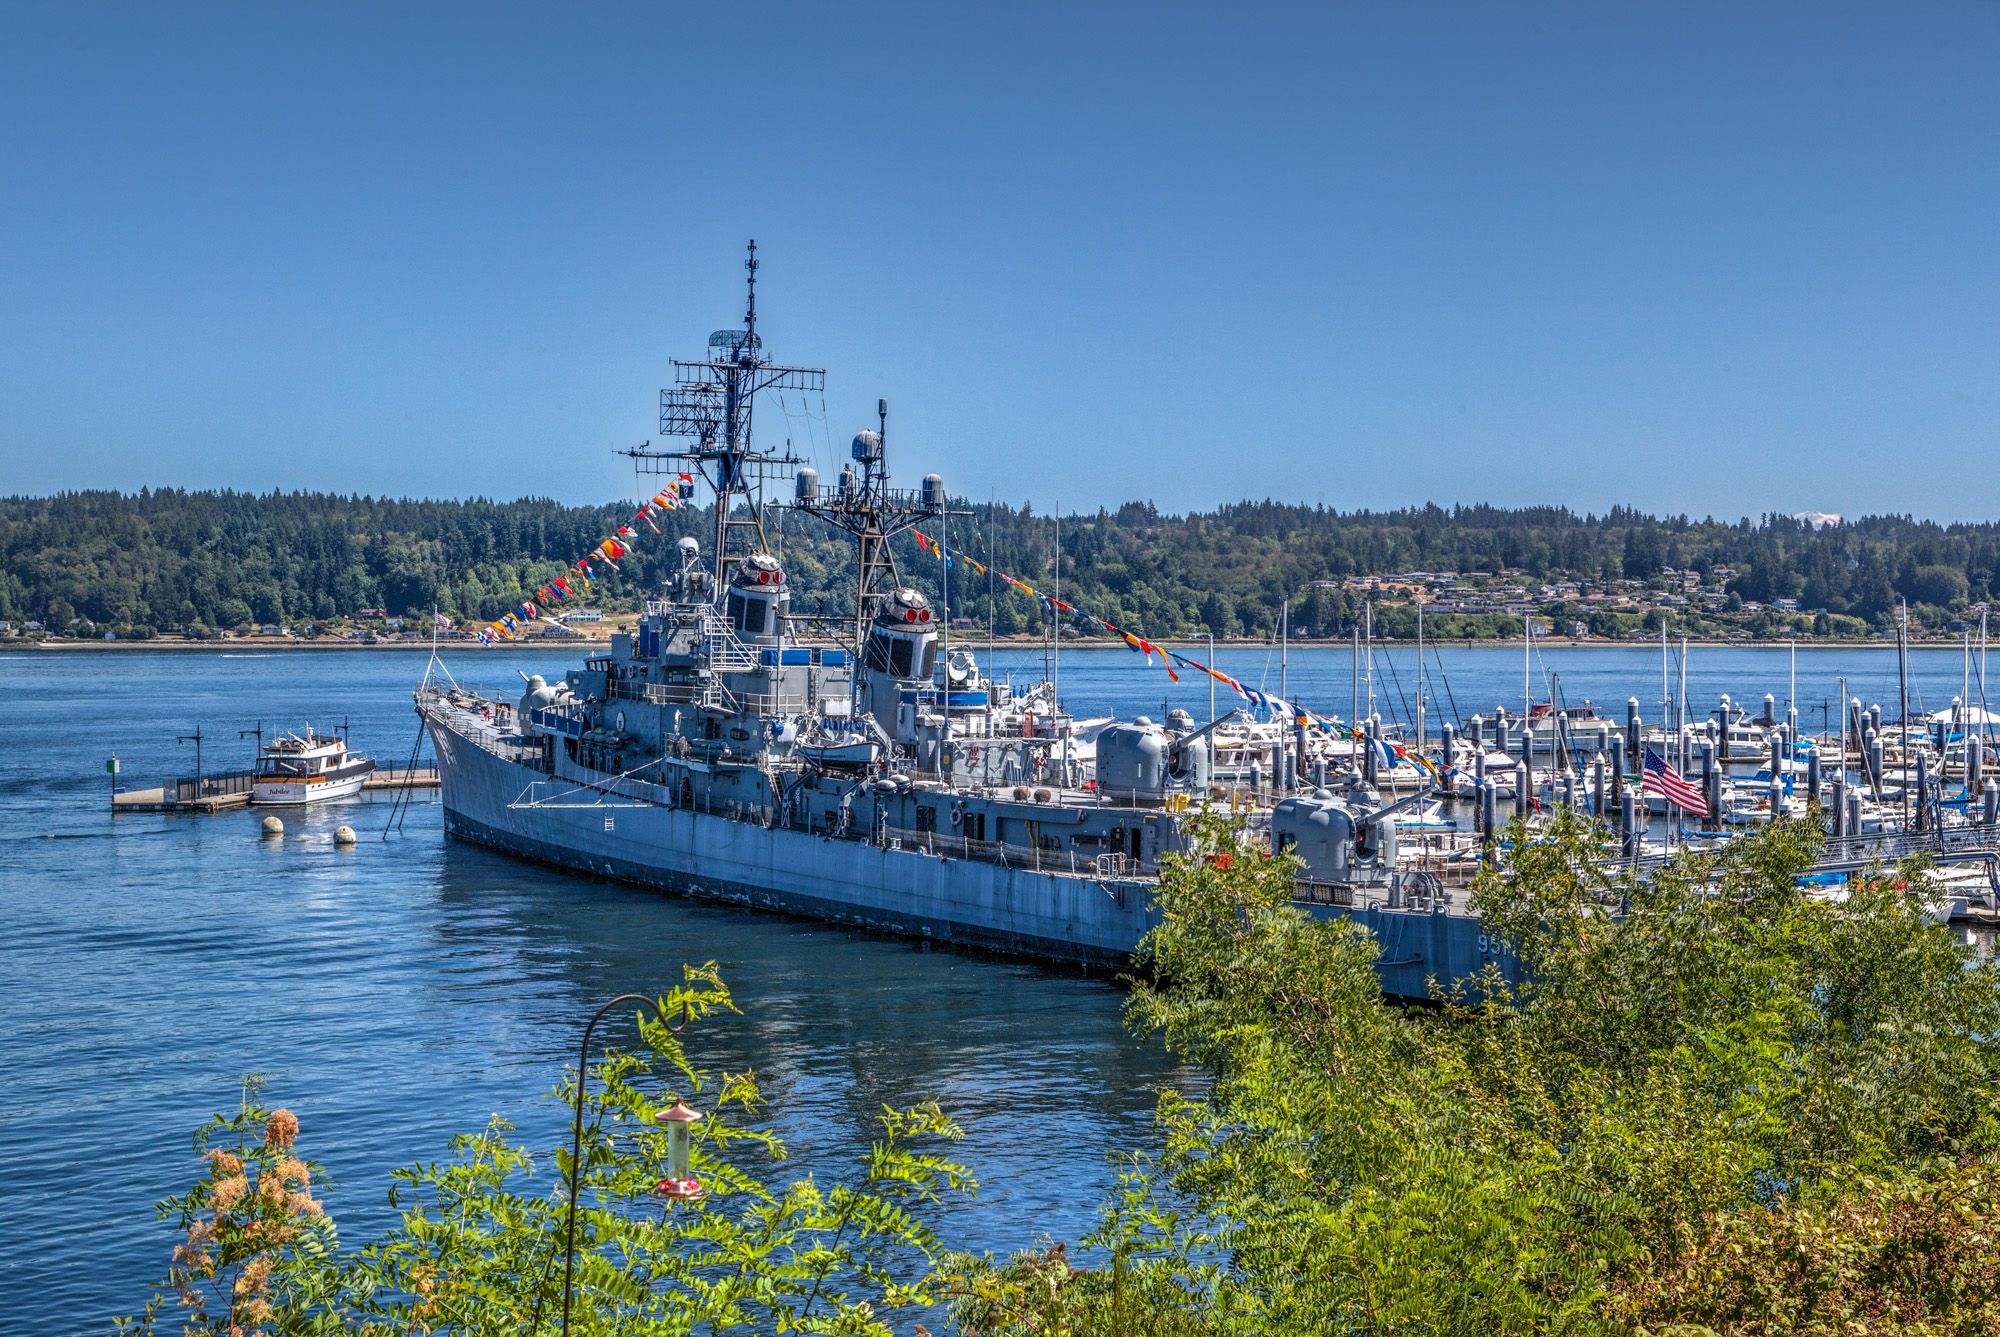 The three best naval museums around Seattle